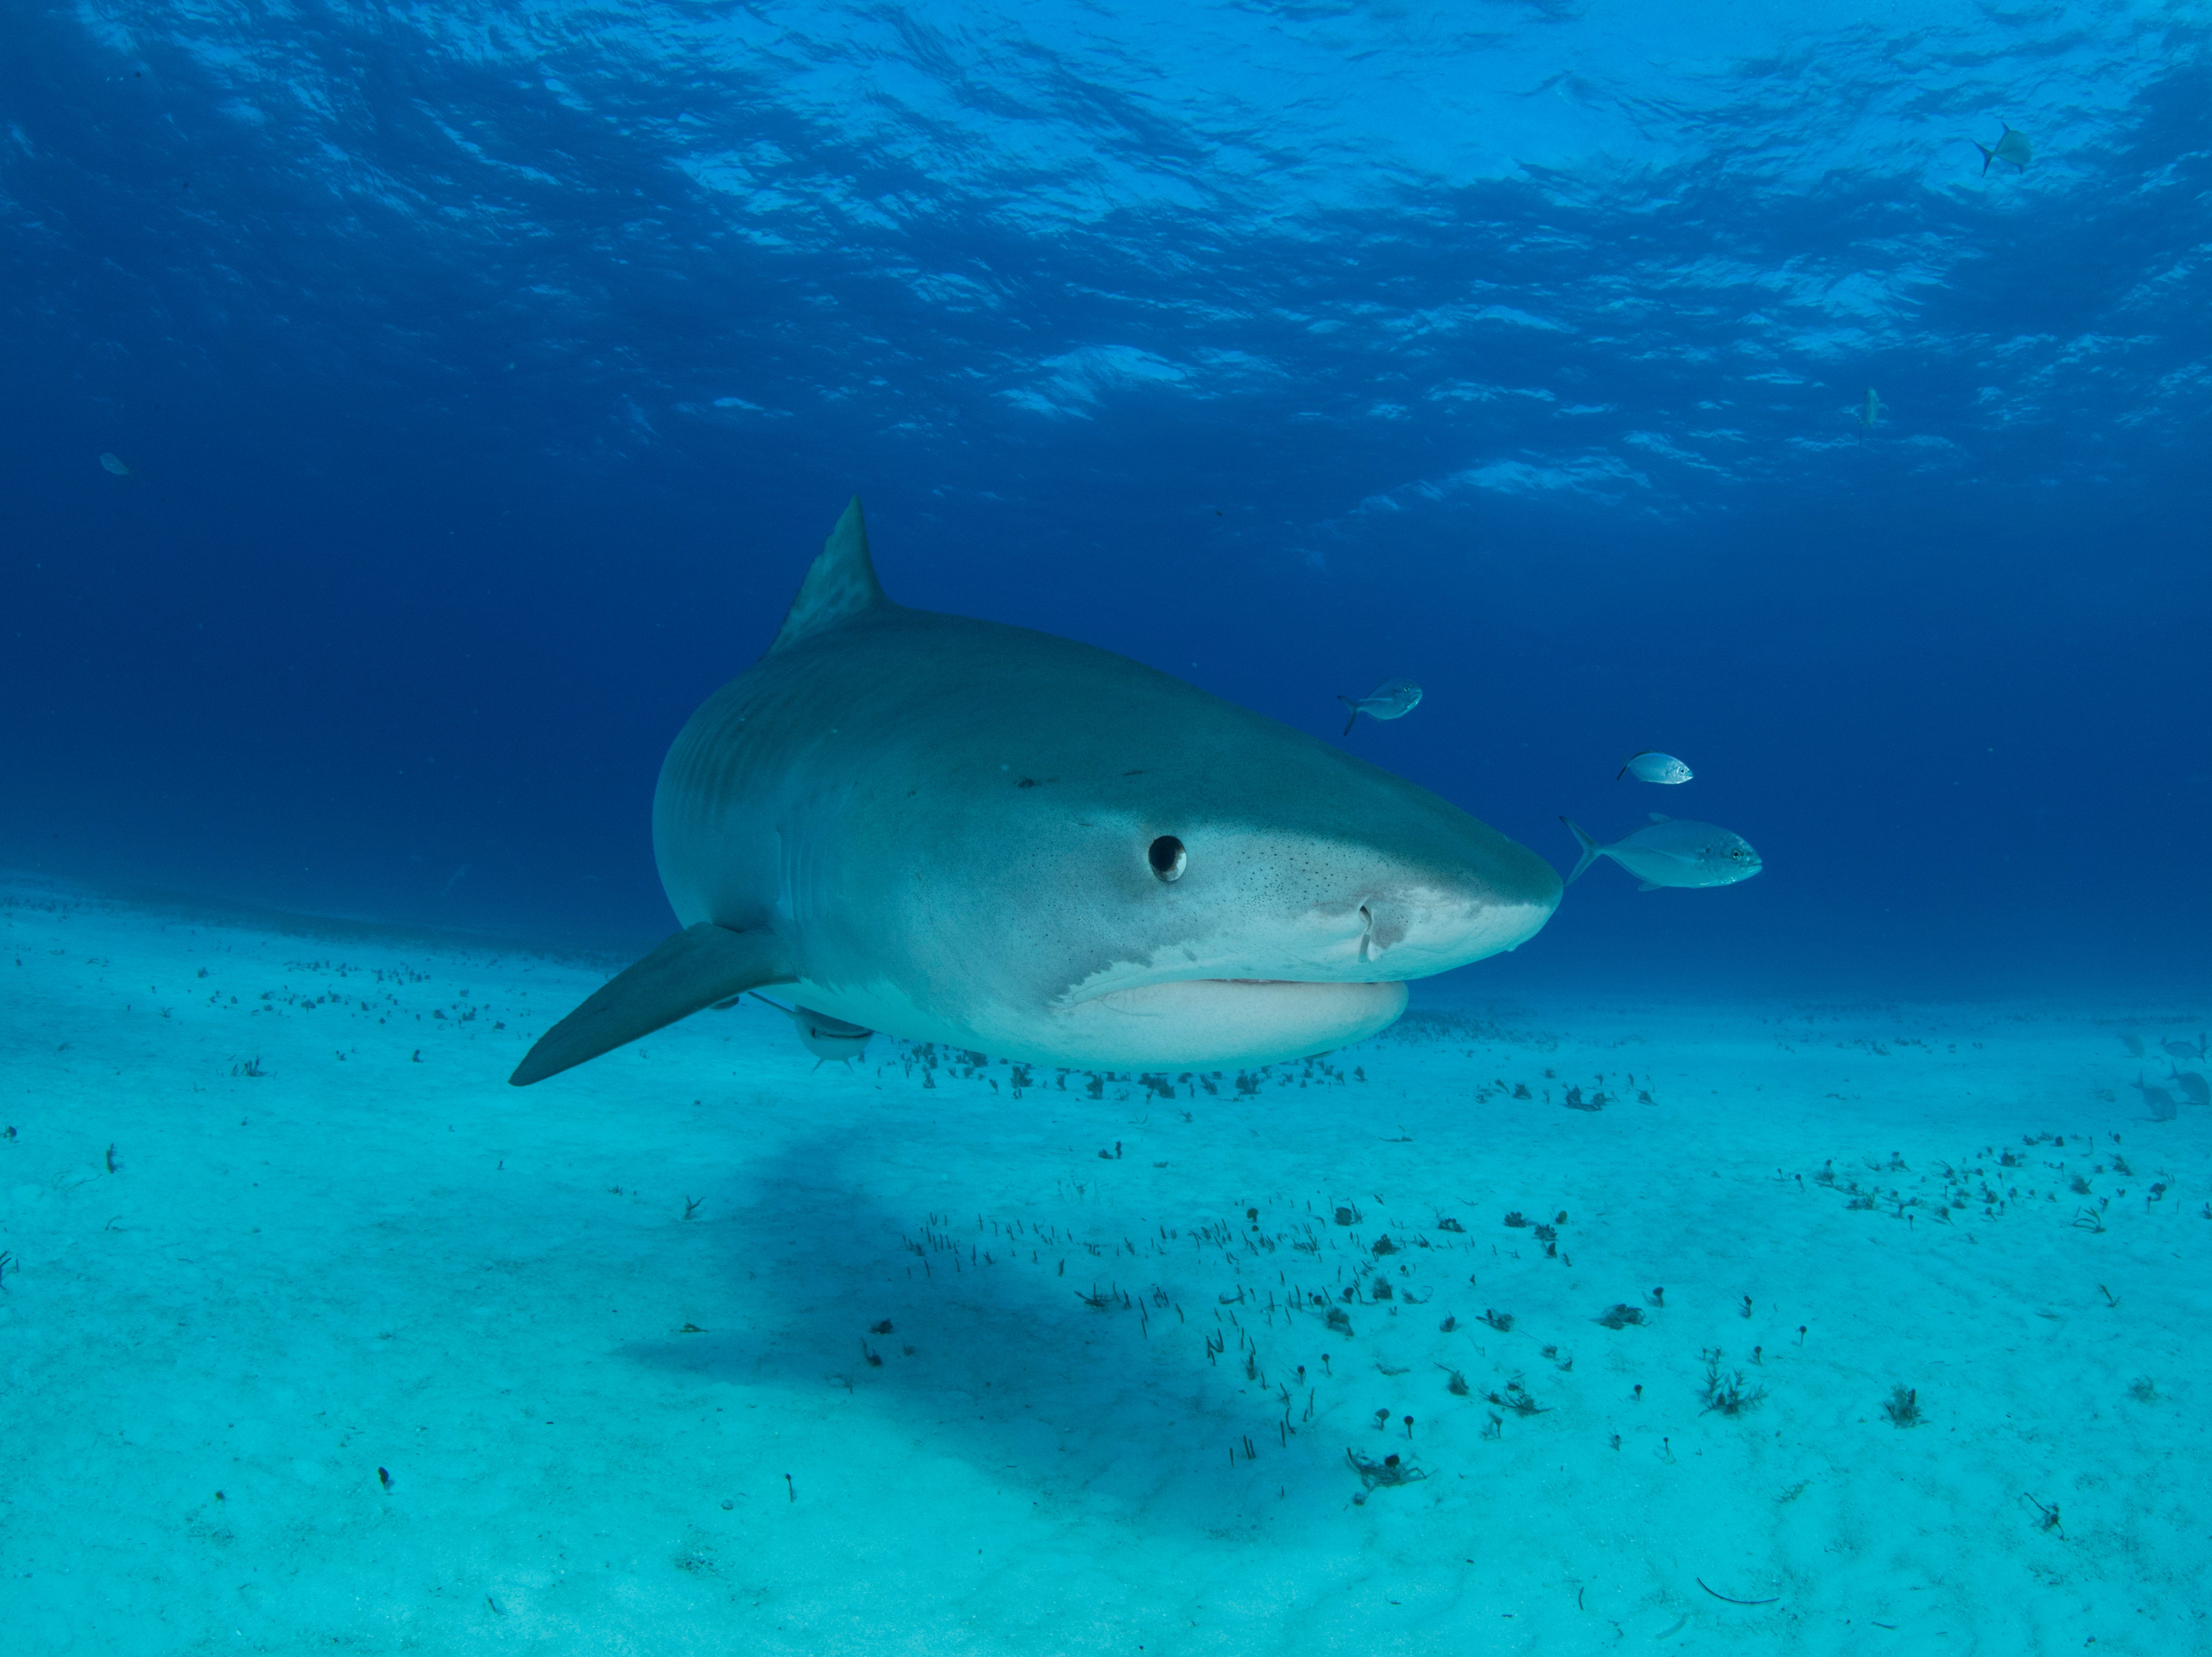 Swimming with tiger sharks in the Bahamas.